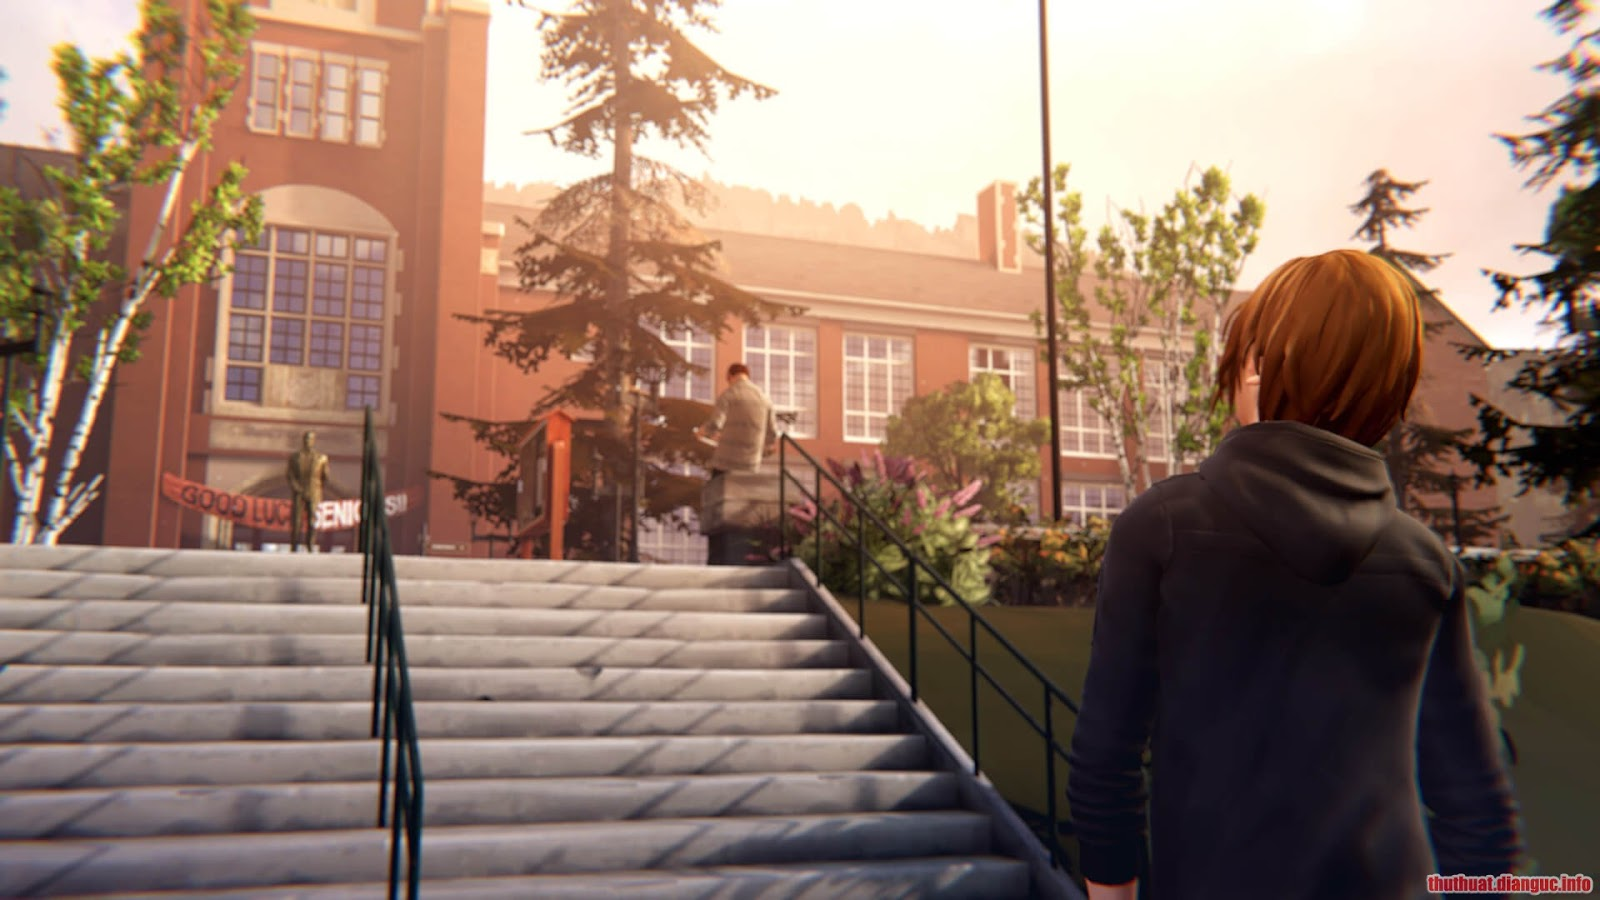 Download Game Life is Strange: Before the Storm Full Crack, Life is Strange: Before the Storm, Life is Strange: Before the Storm free download, Tải game Life is Strange: Before the Storm miễn phí , Tải Game Life is Strange: Before the Storm Full crack